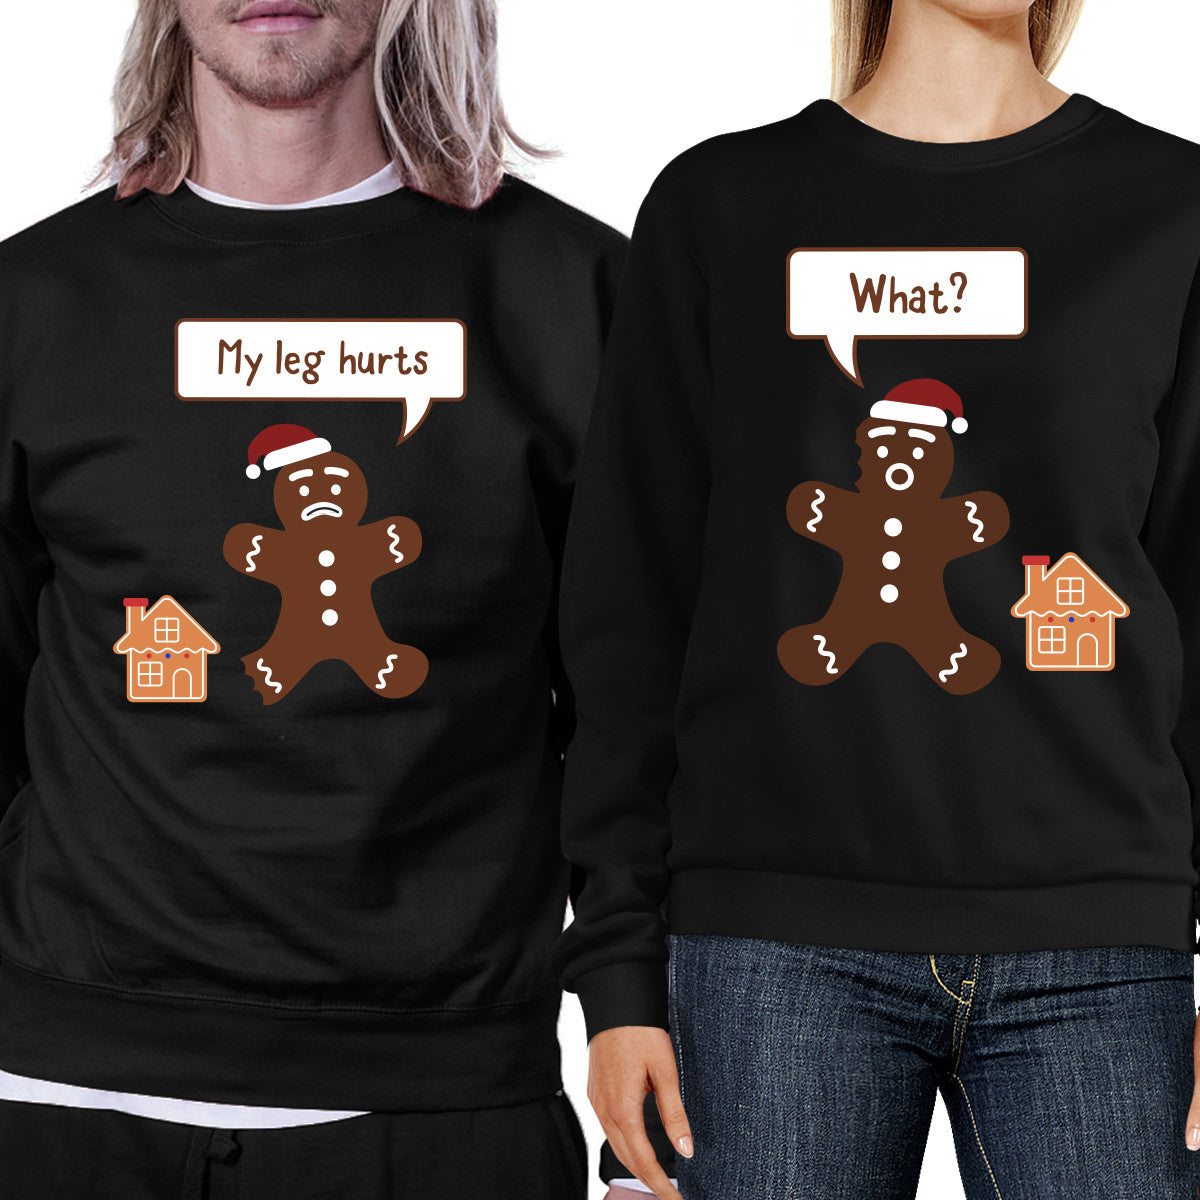 d66da5c03b Christmas Gingerbread Couple Sweatshirts Holiday Matching Tops - 365 ...